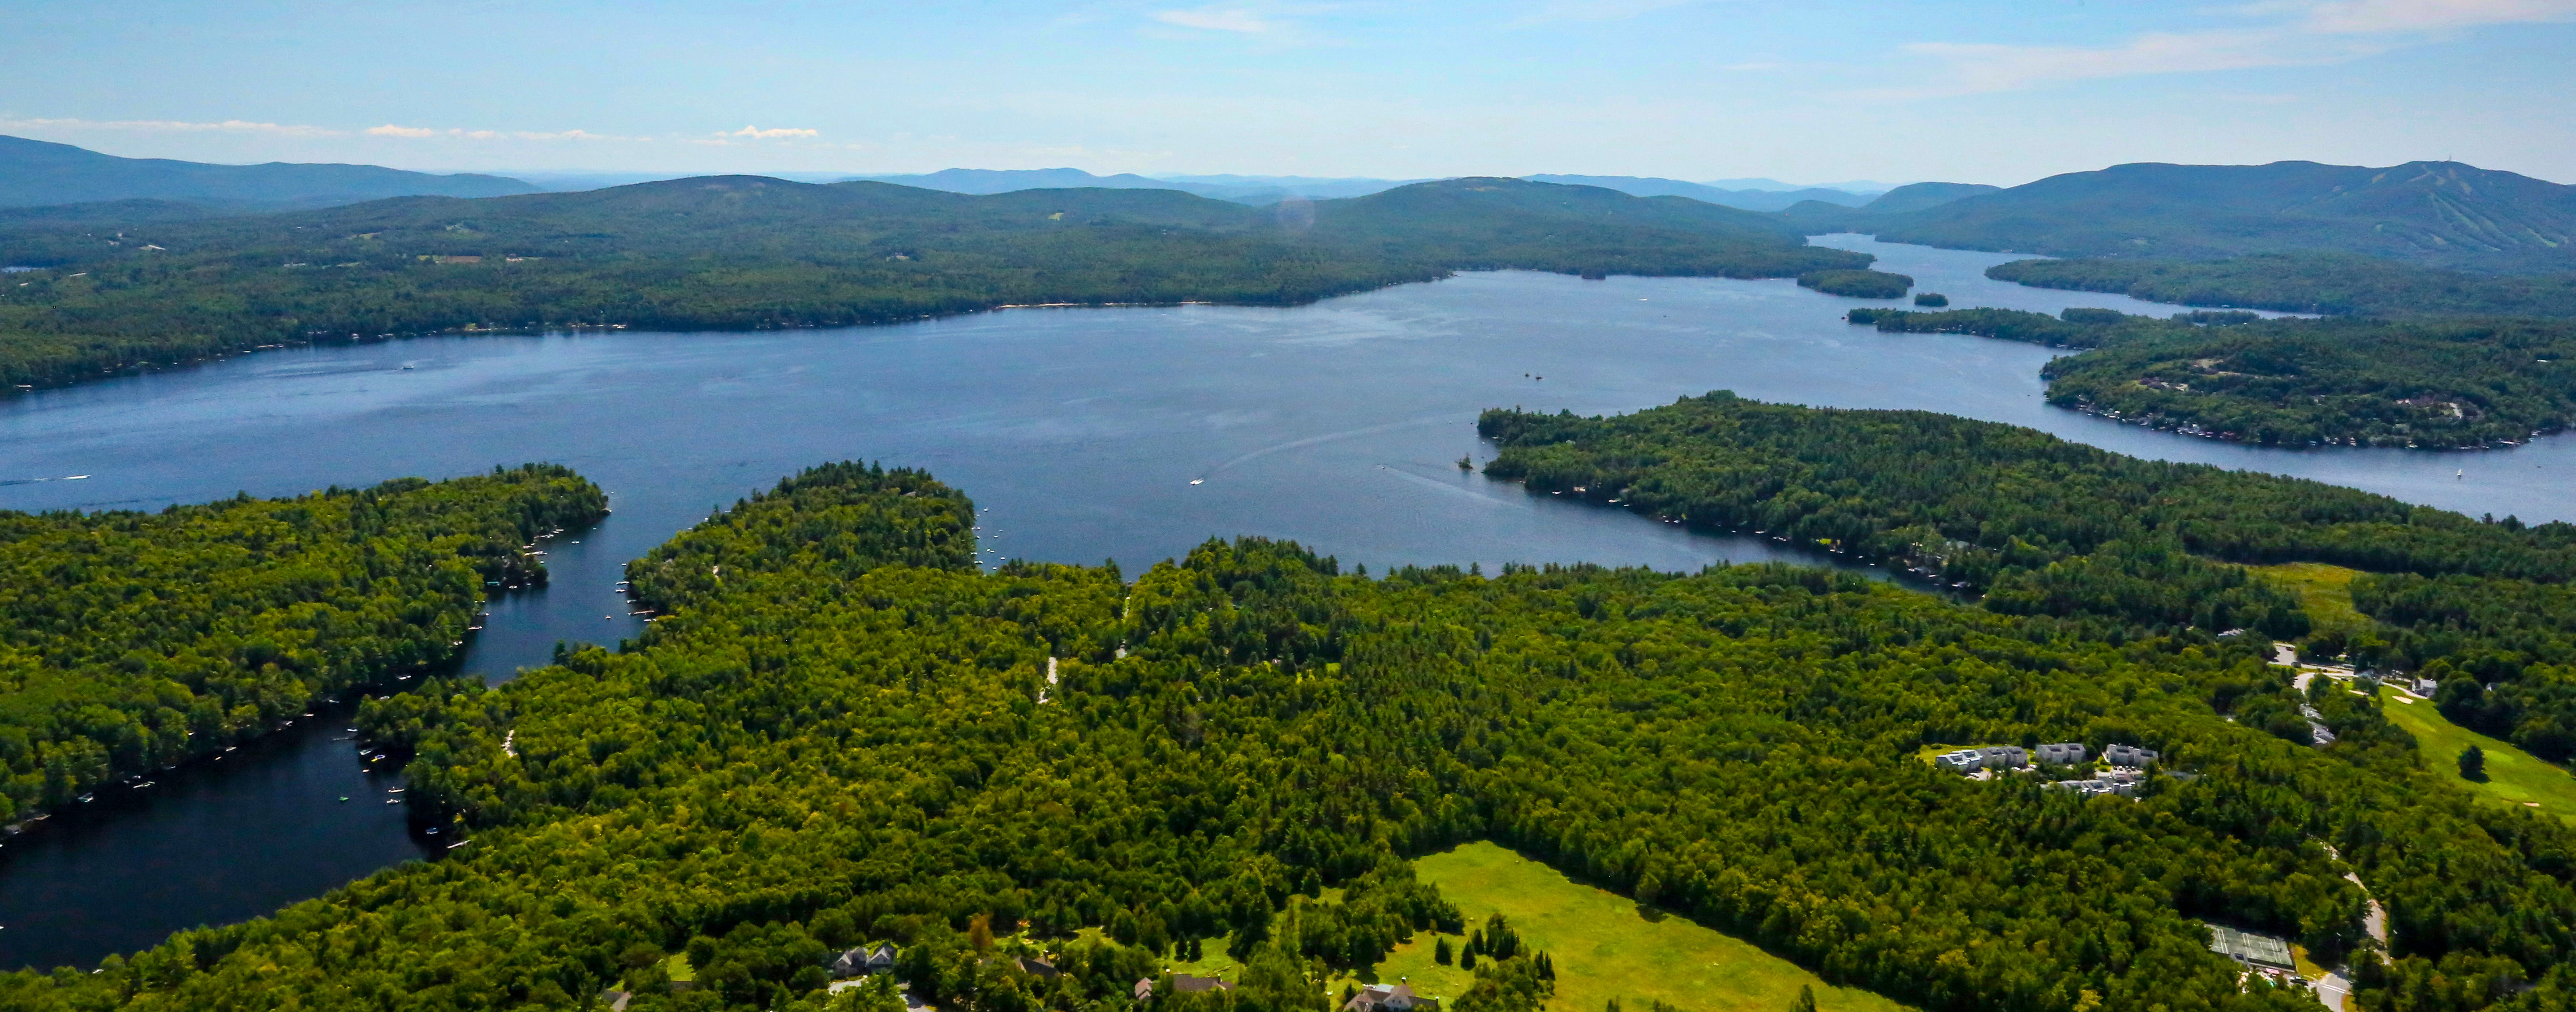 Browns Hill - Lake Sunapee -Pam Perkins Real Estate